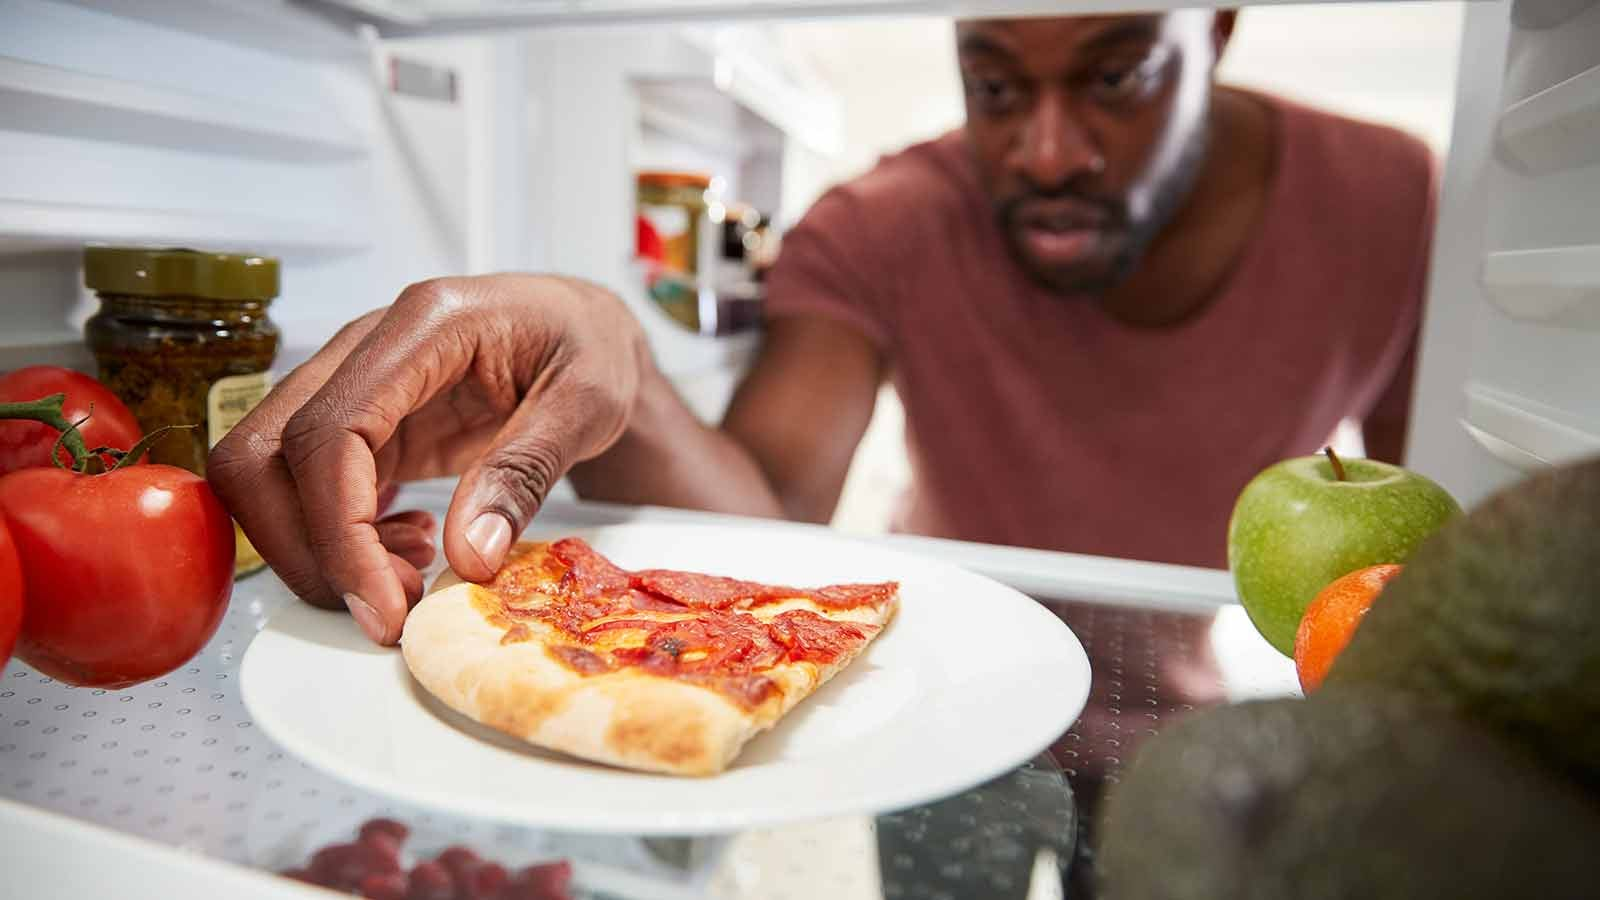 man pulling a piece of left over pizza out of the fridge